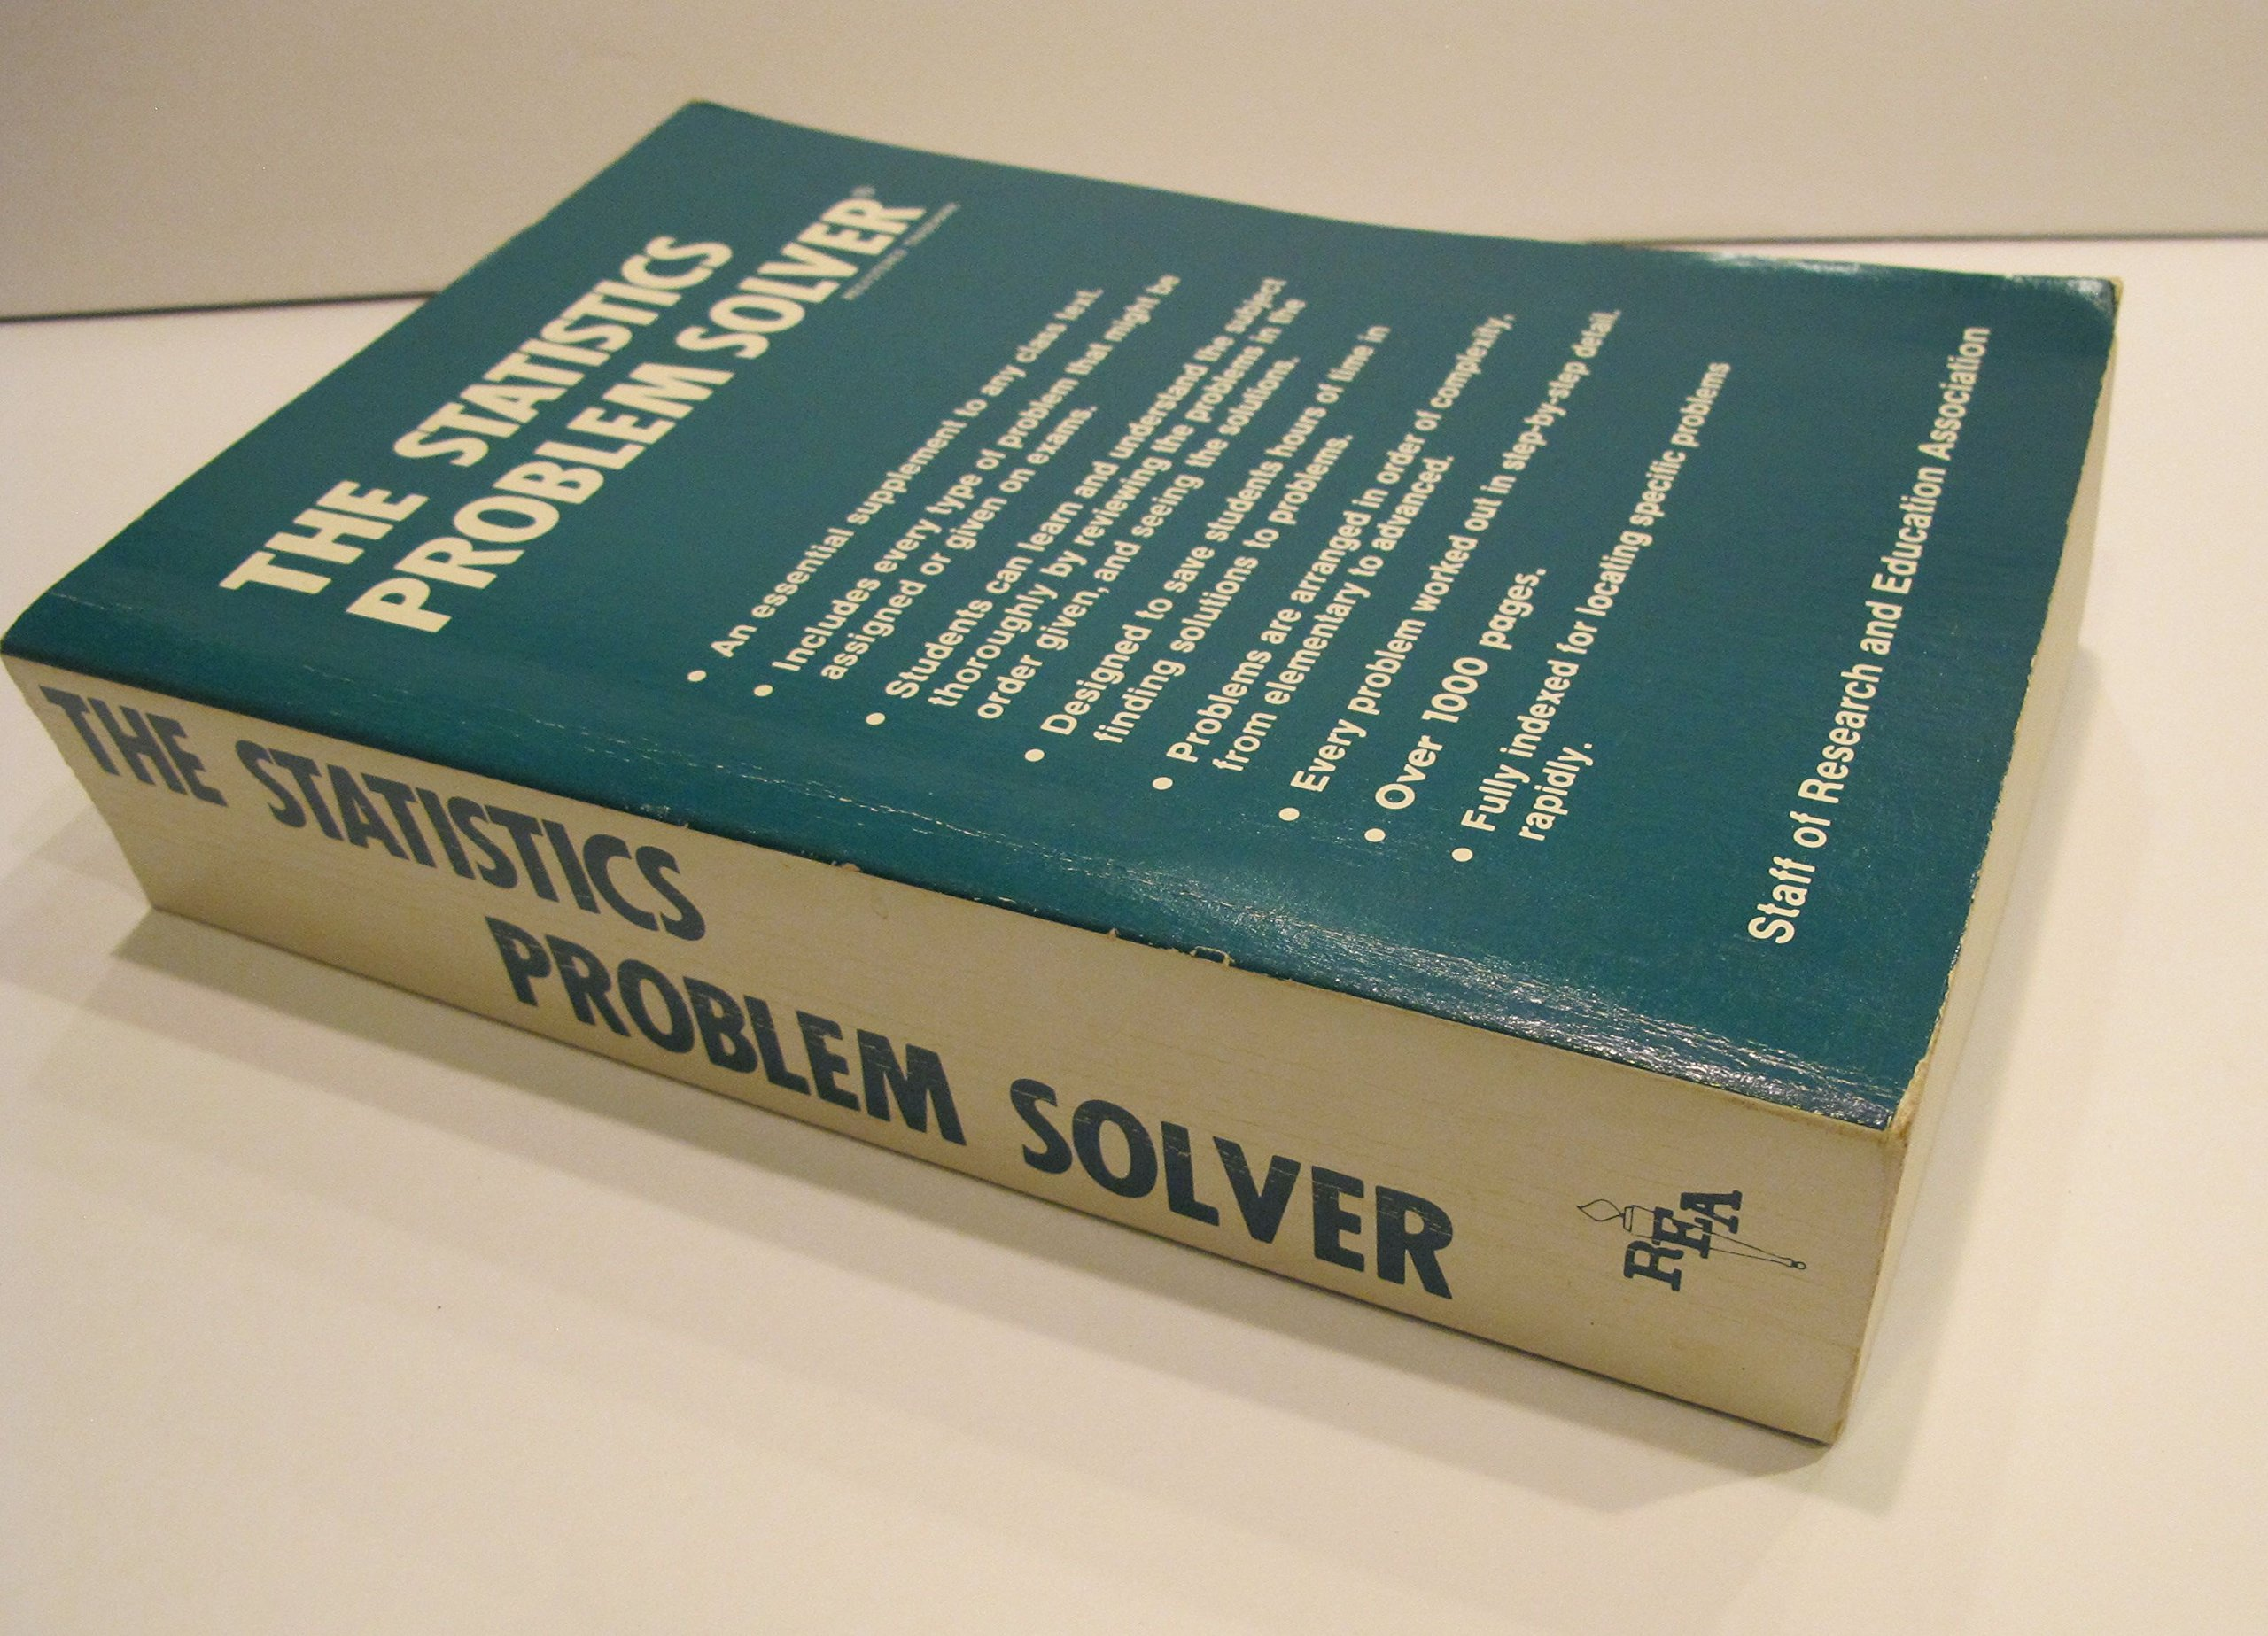 the statistics problem solver m dr director staff of  the statistics problem solver m dr director staff of research and education association fogiel com books